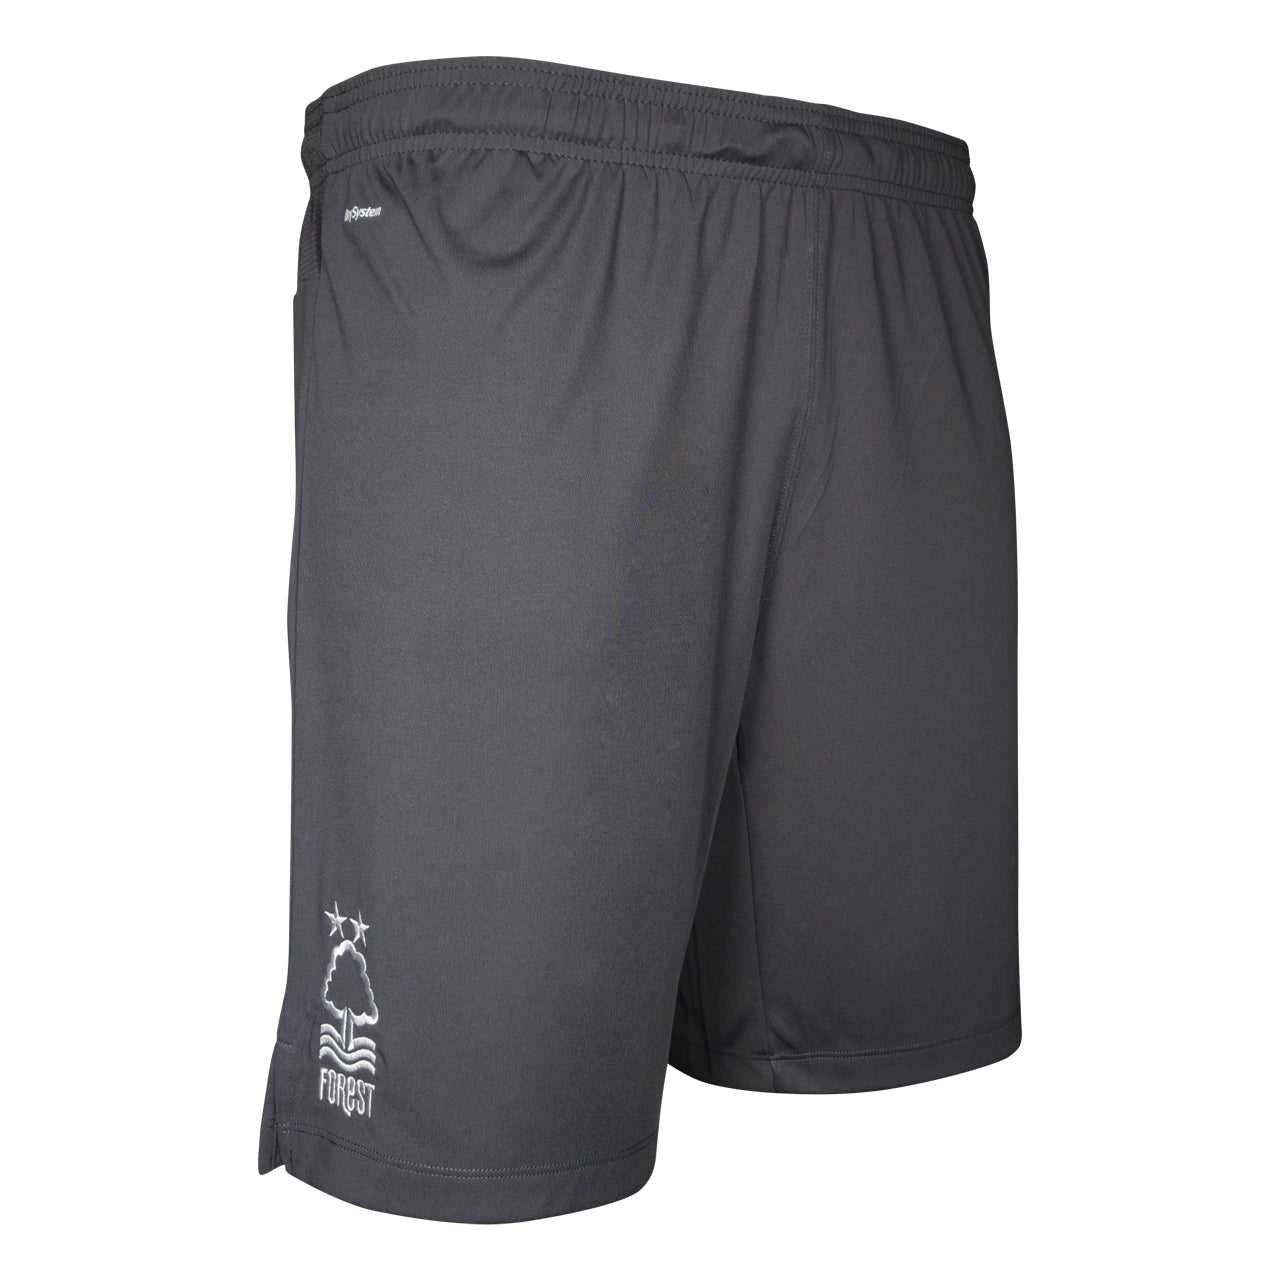 NFFC Junior Training Shorts 19/20